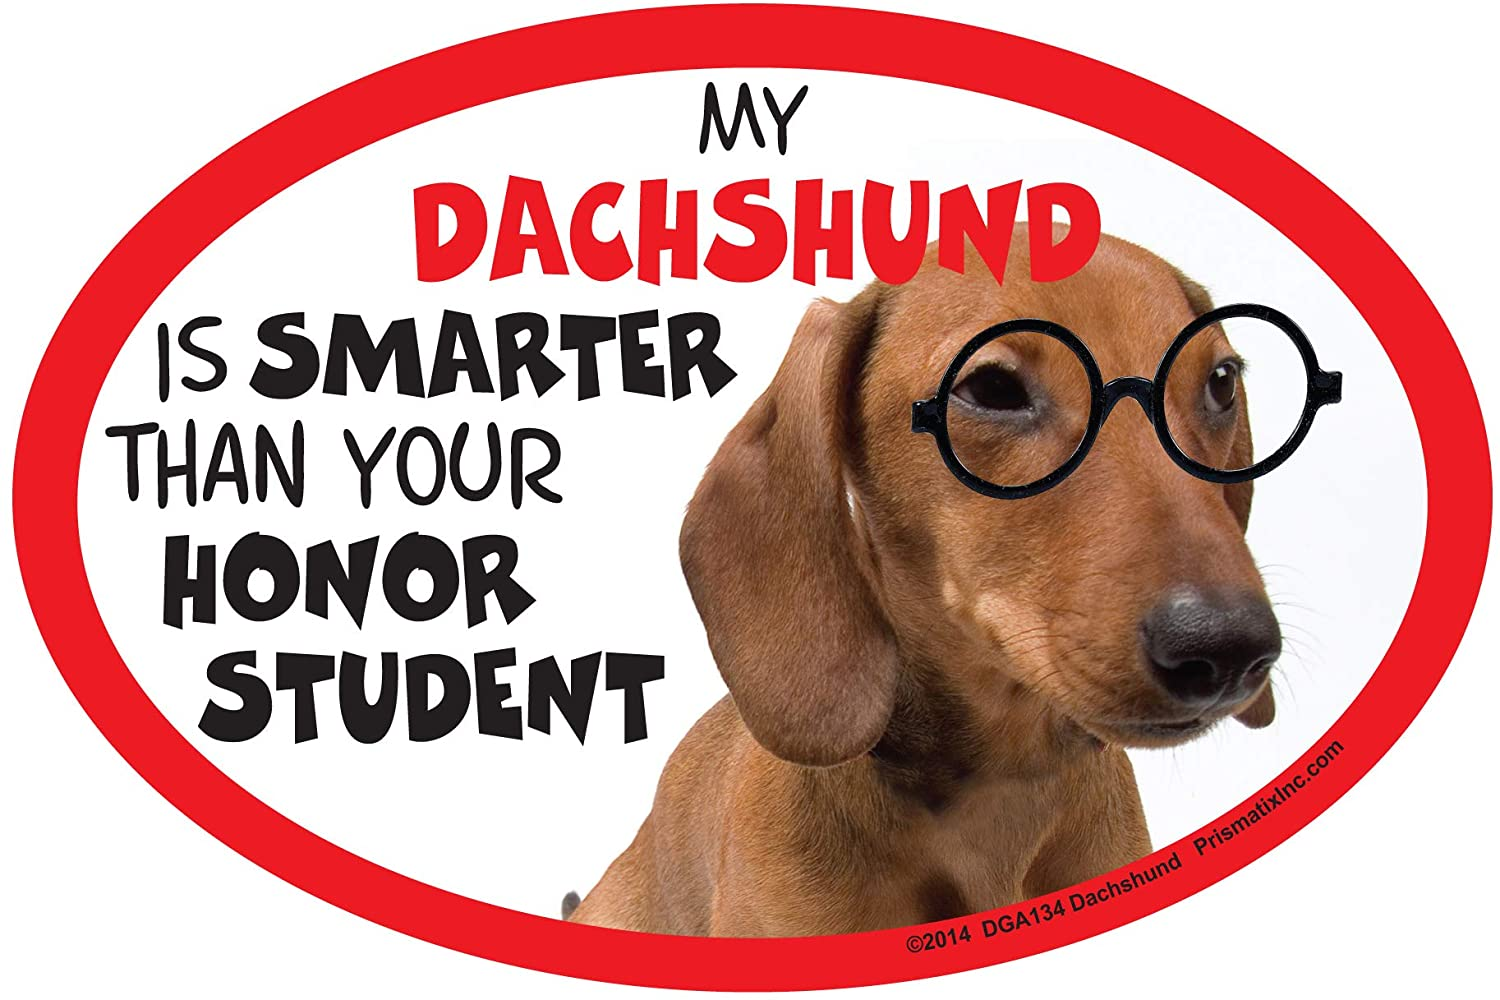 Dachshund Car Magnets: My Dachshund is Smarter Than Your Honor Student - Oval 6